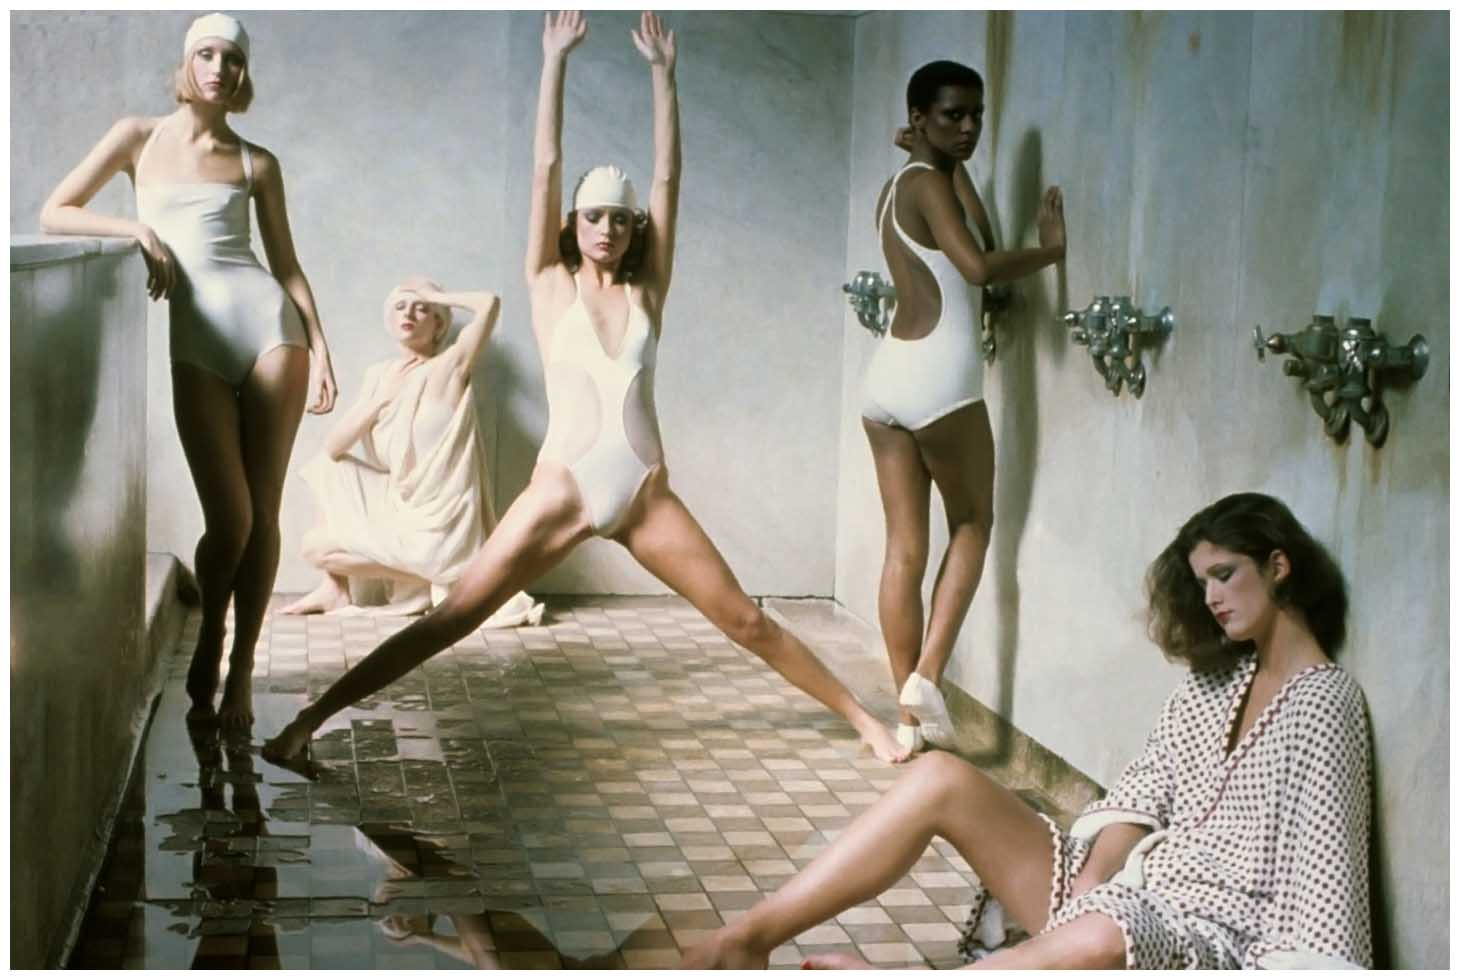 BATHOUSE SERIES BY DEBORAH TURBEVILLE FOR VOGUE MAY 1975